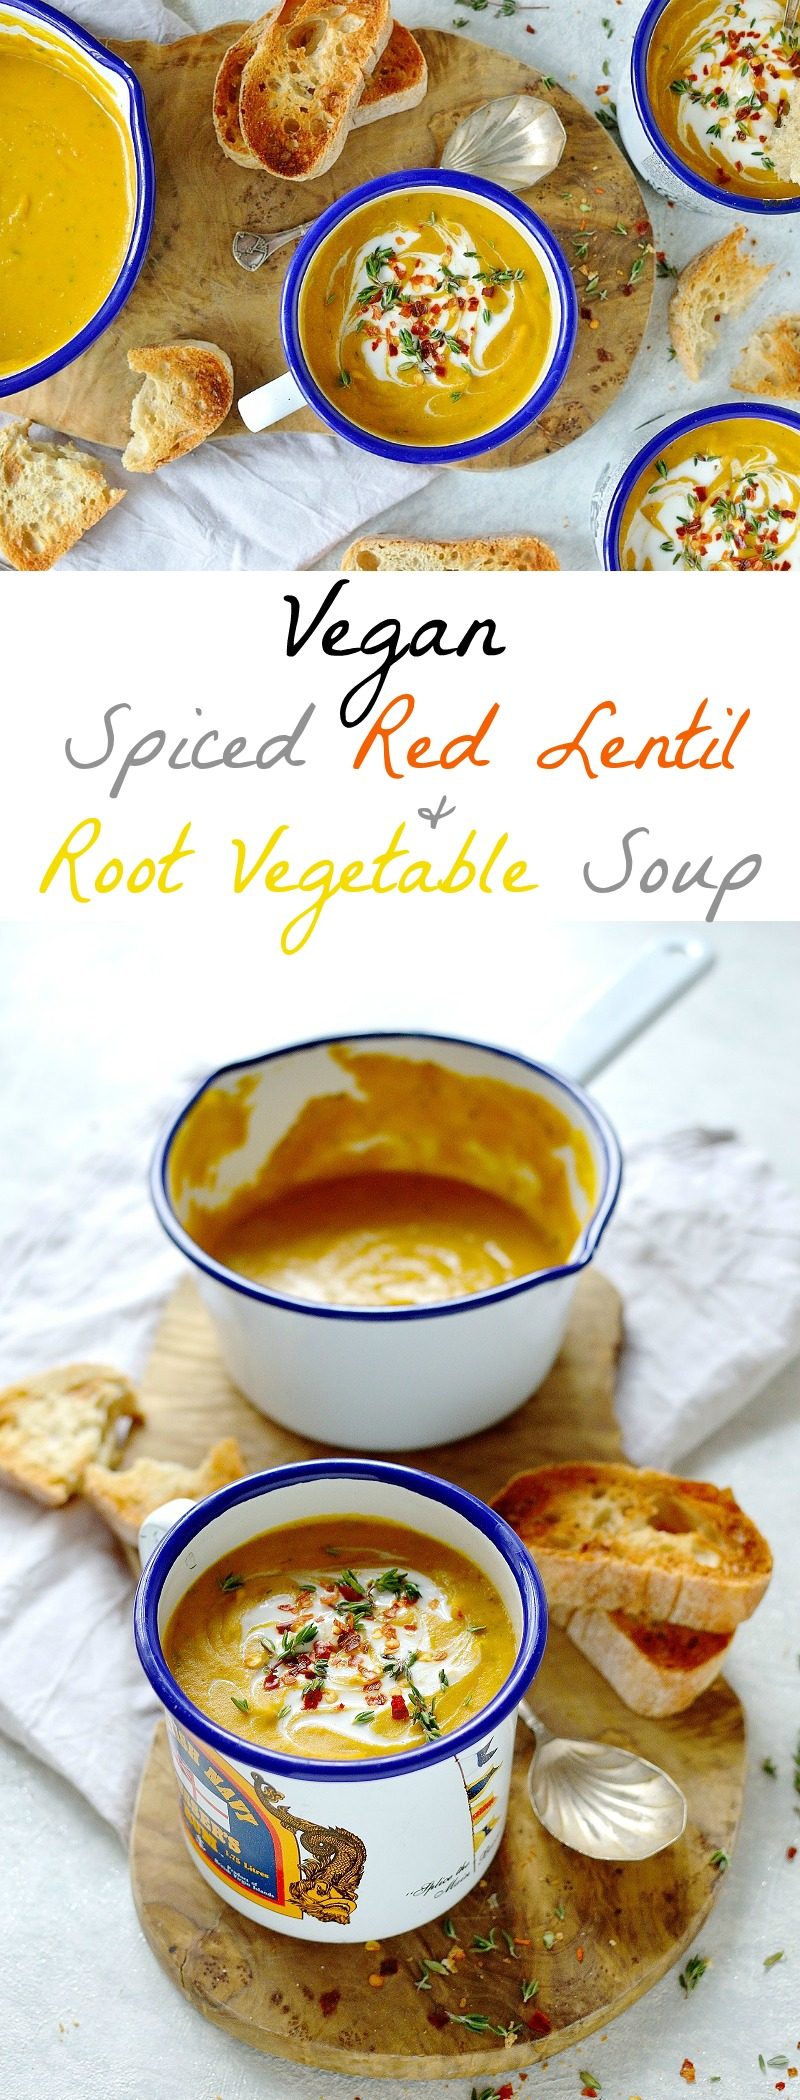 Vegan spiced red lentil and root vegetable soup - a healthy, hearty, warming lunch that is quick, easy and thrifty to make!